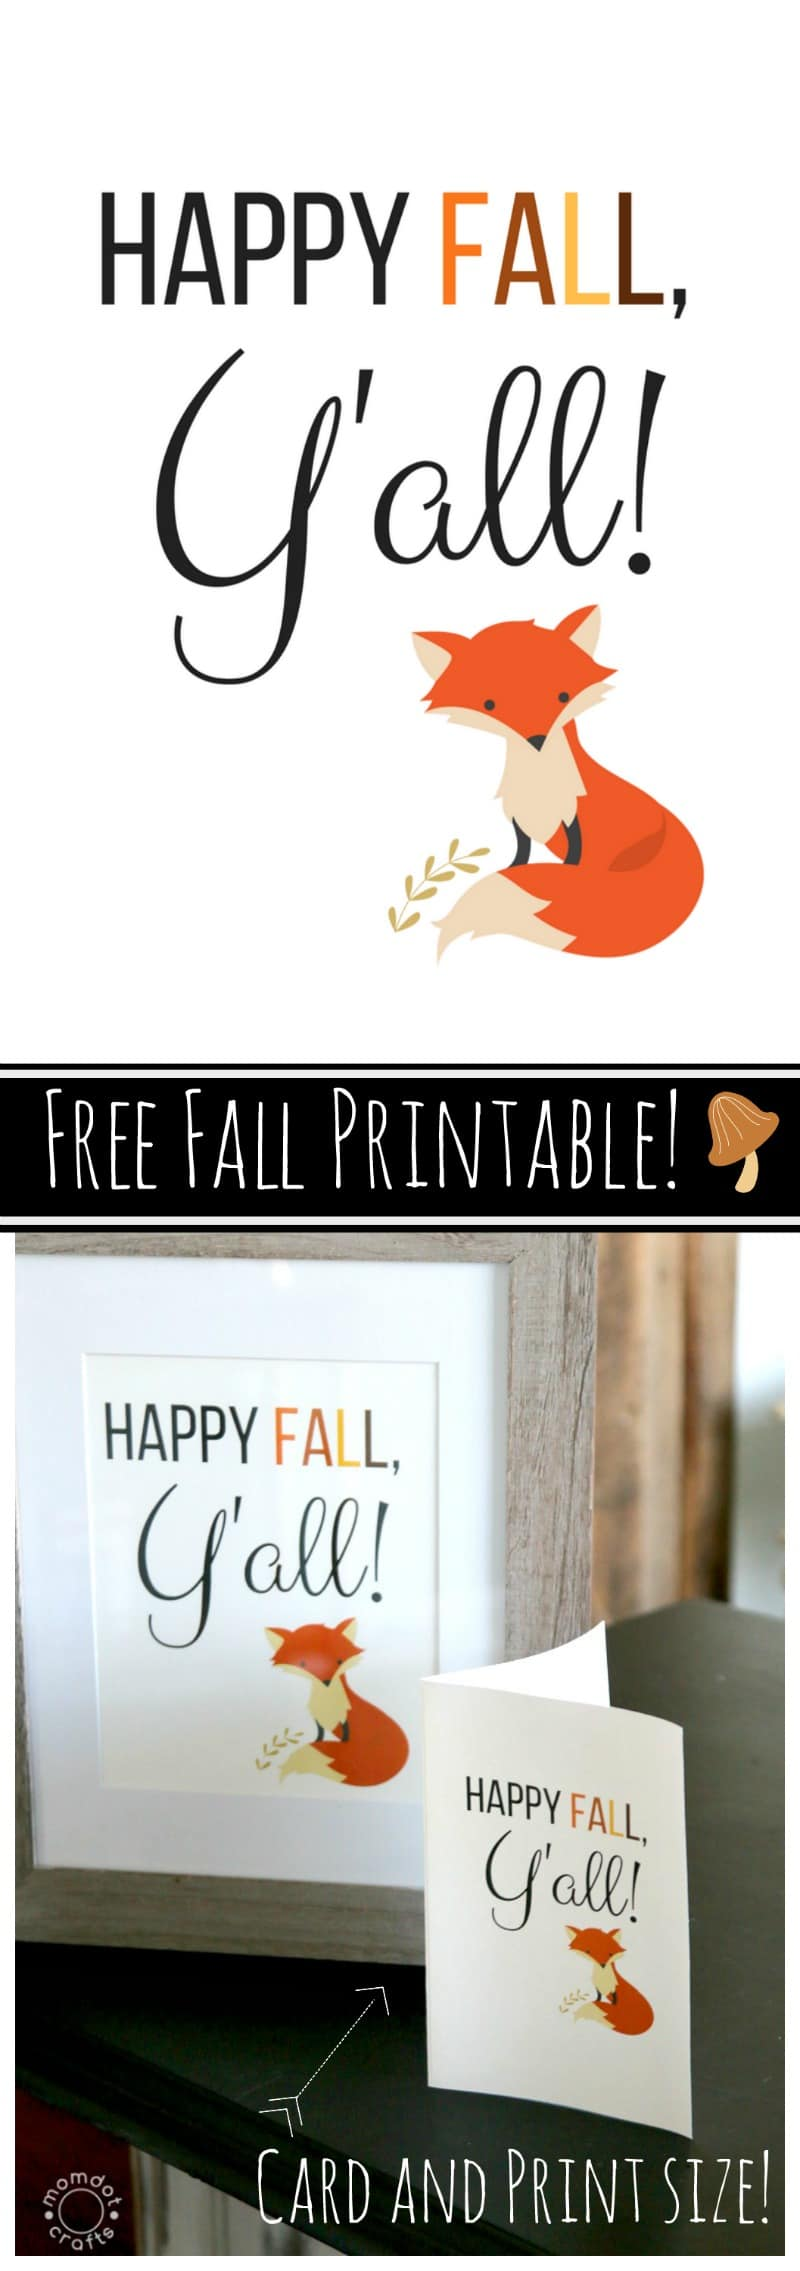 This is an image of Lucrative Happy Fall Yall Printable